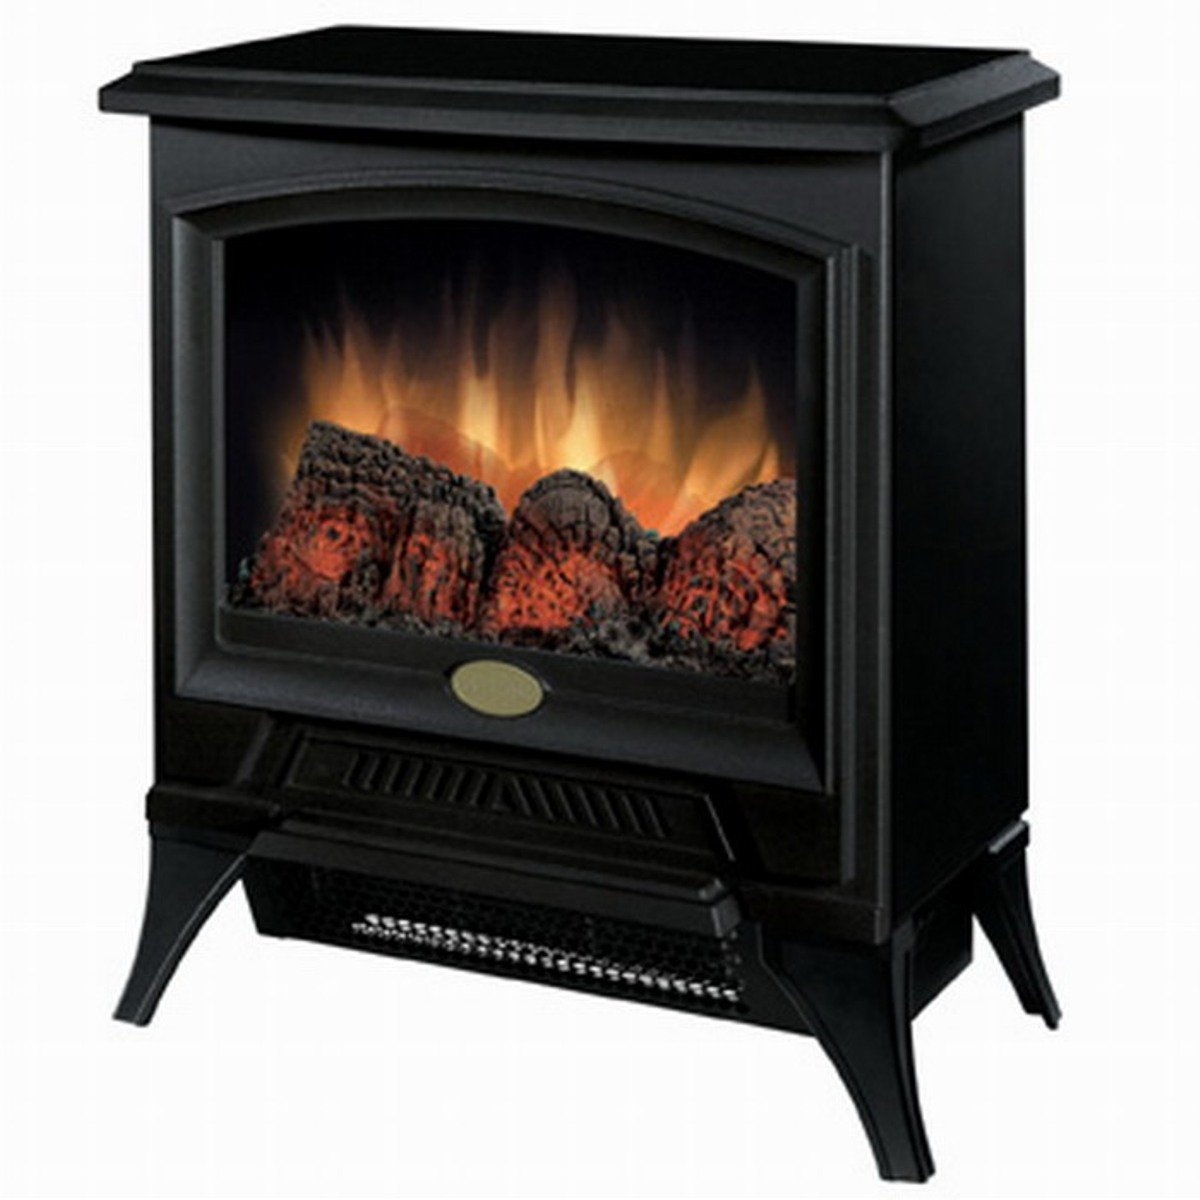 Dimplex CS1205 Compact Electric Stove: